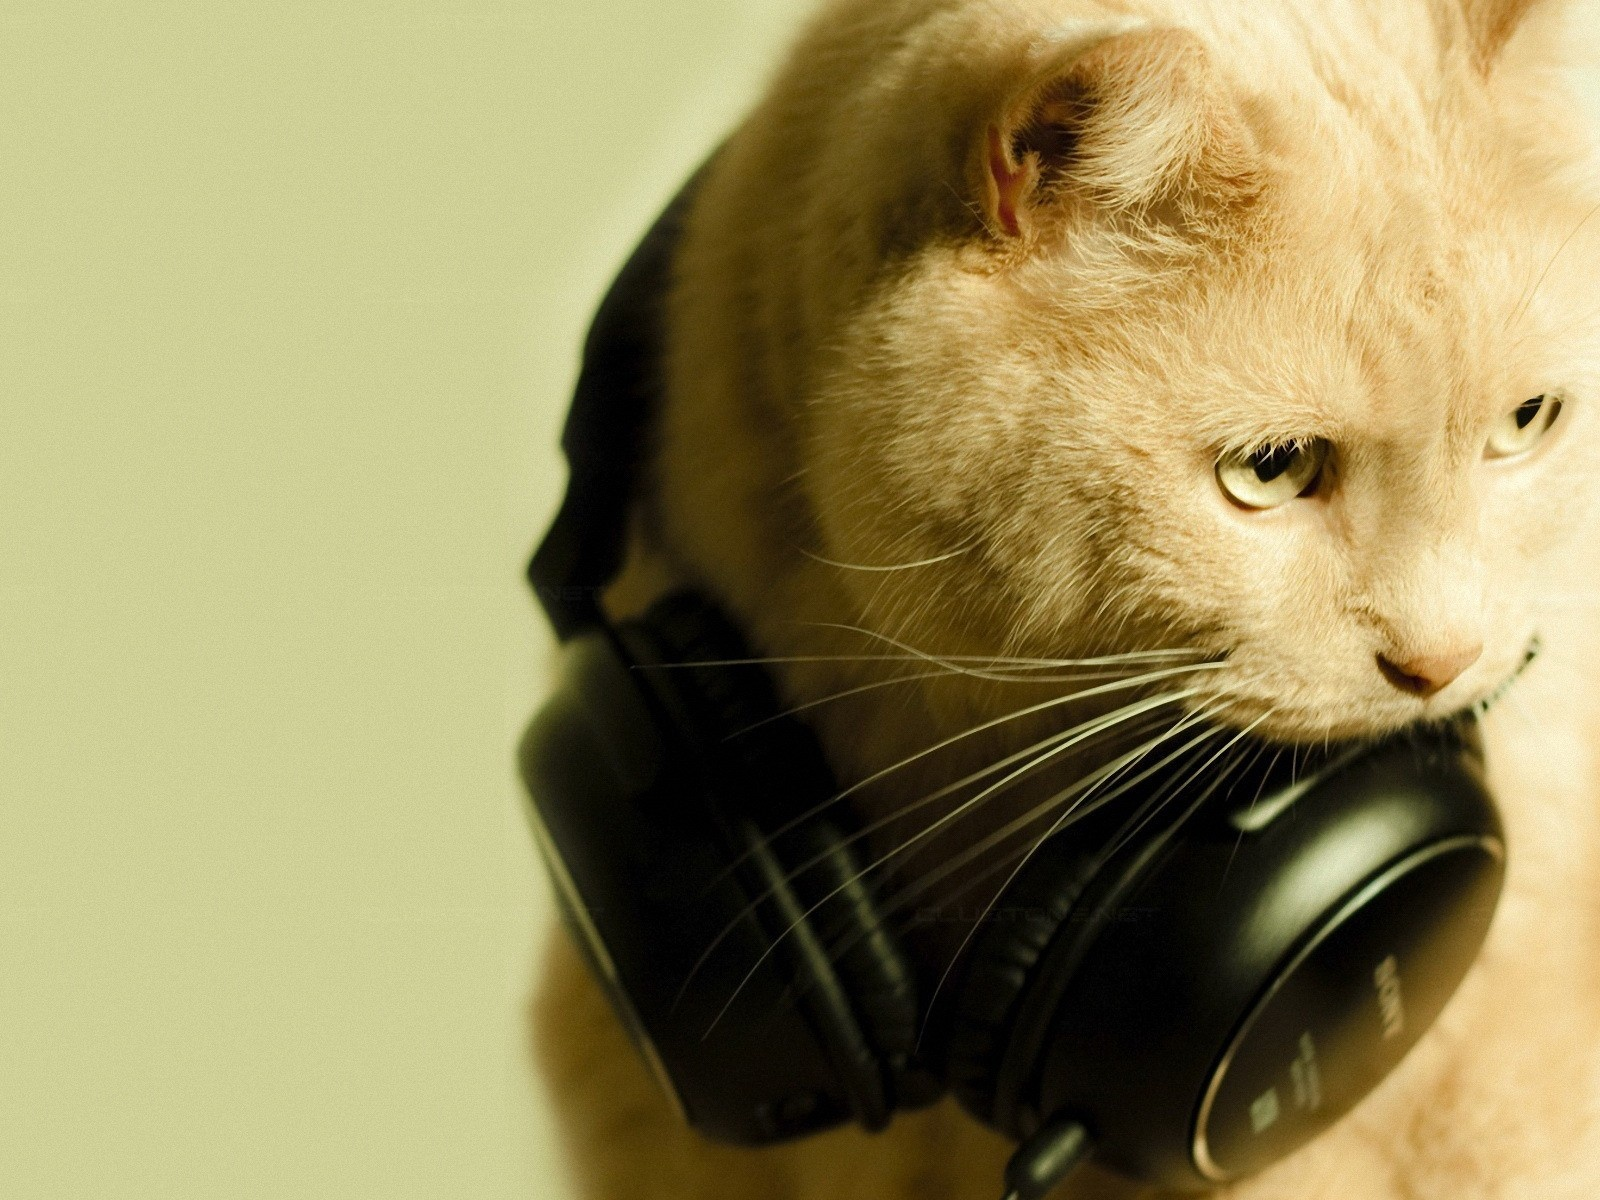 click to free download the wallpaper--Cute Animals Pic, Cat in Earphone, Can't Take It Off, Amazing Melody 1600X1200 free wallpaper download